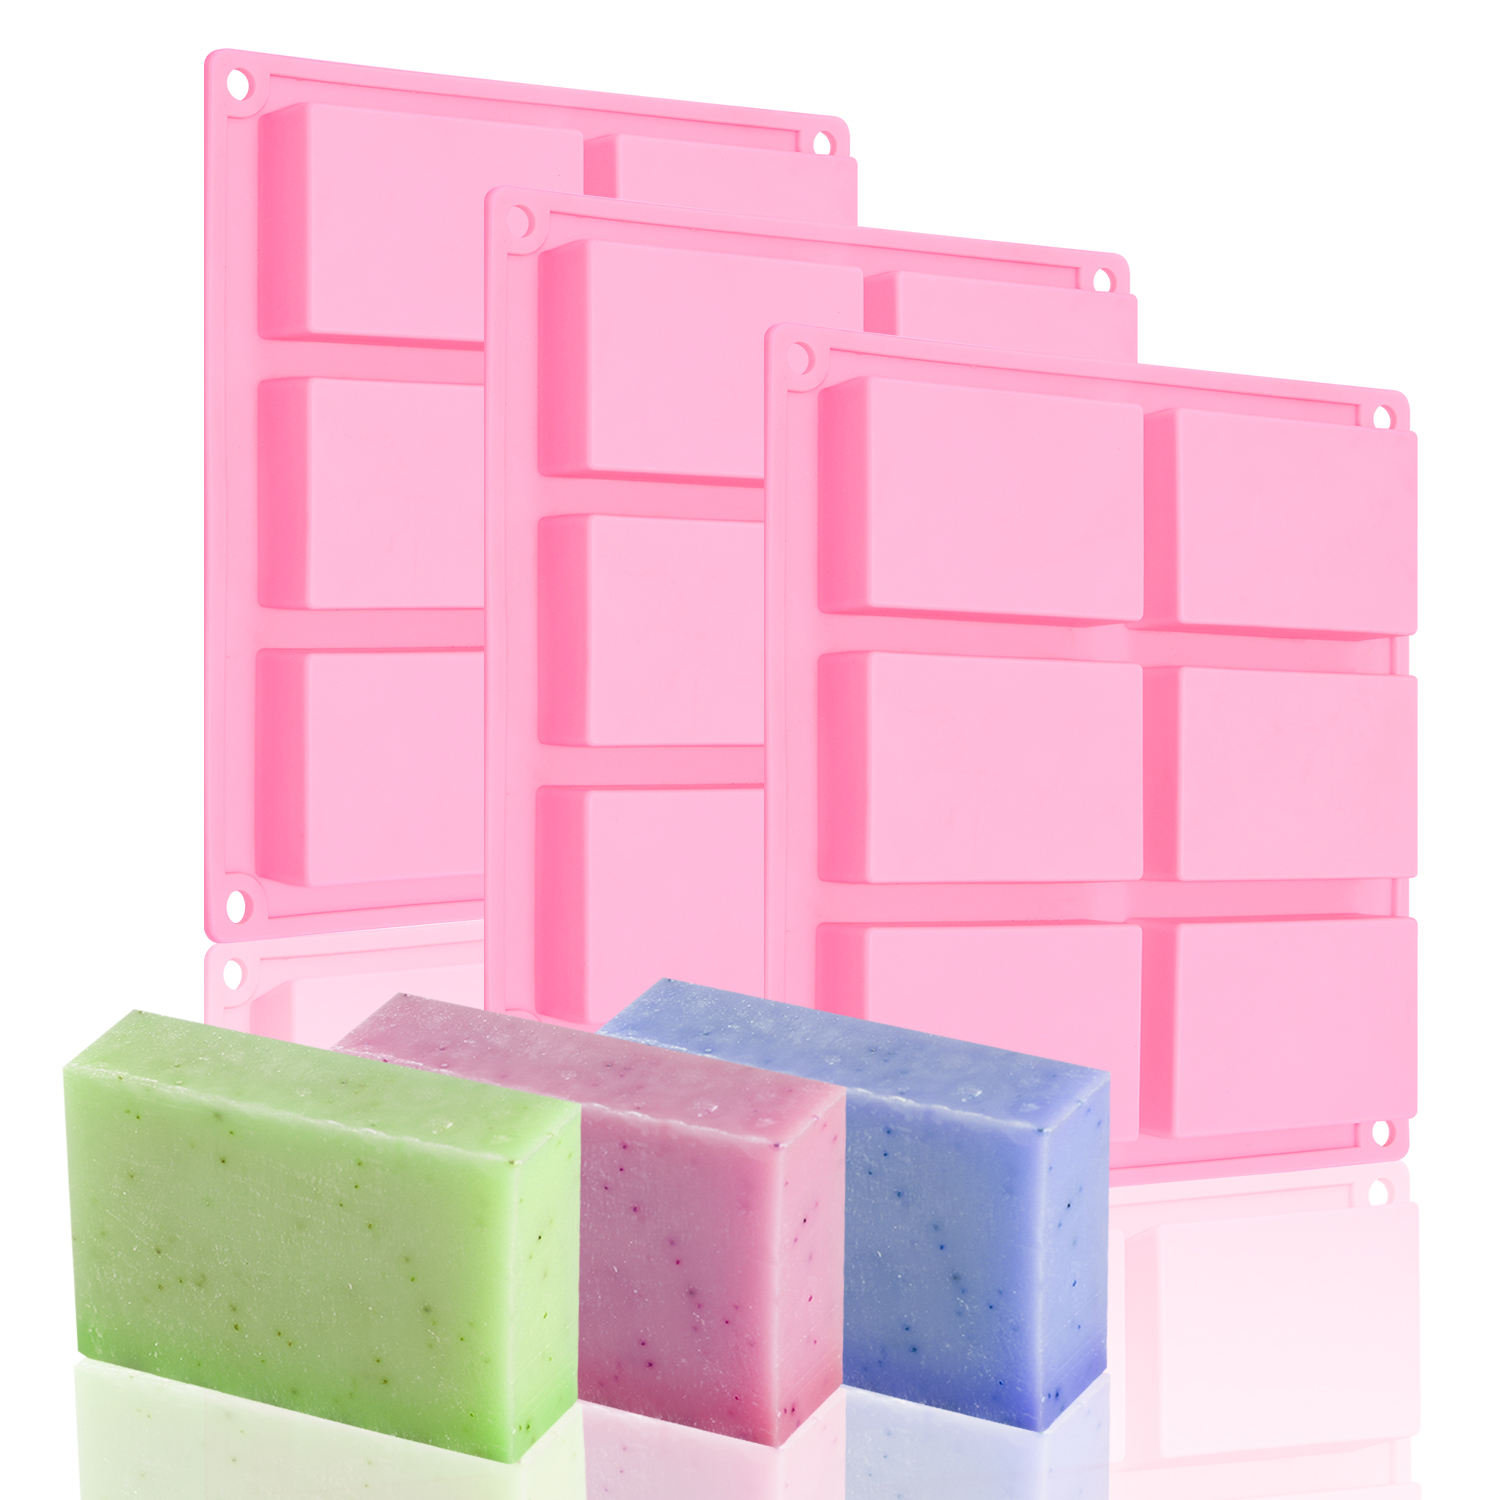 BHD Wholesale BPA free DIY Homemade 6 Cavity Rectangle Soap Making Soap Mold Silicone